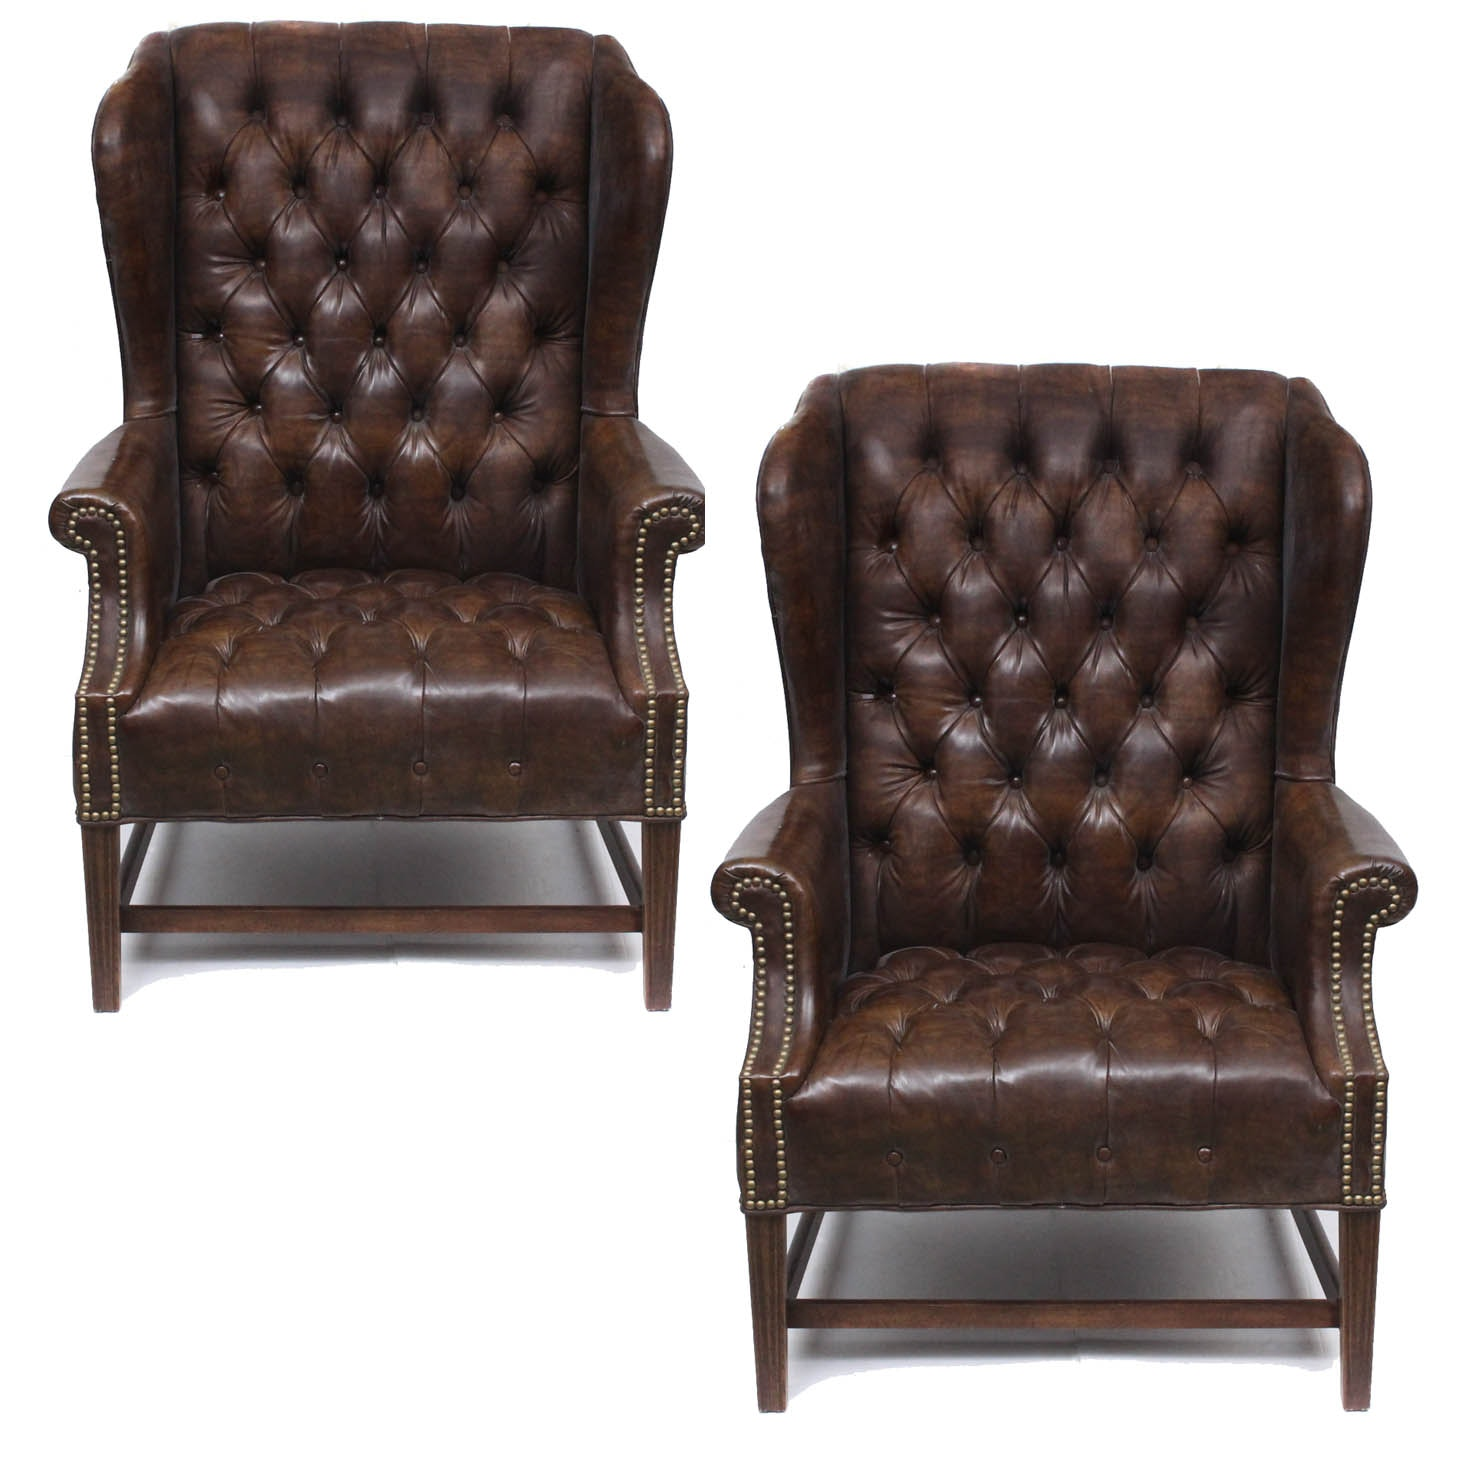 Two Vintage Faux Leather Wing Back Chairs By Sam Moore ...